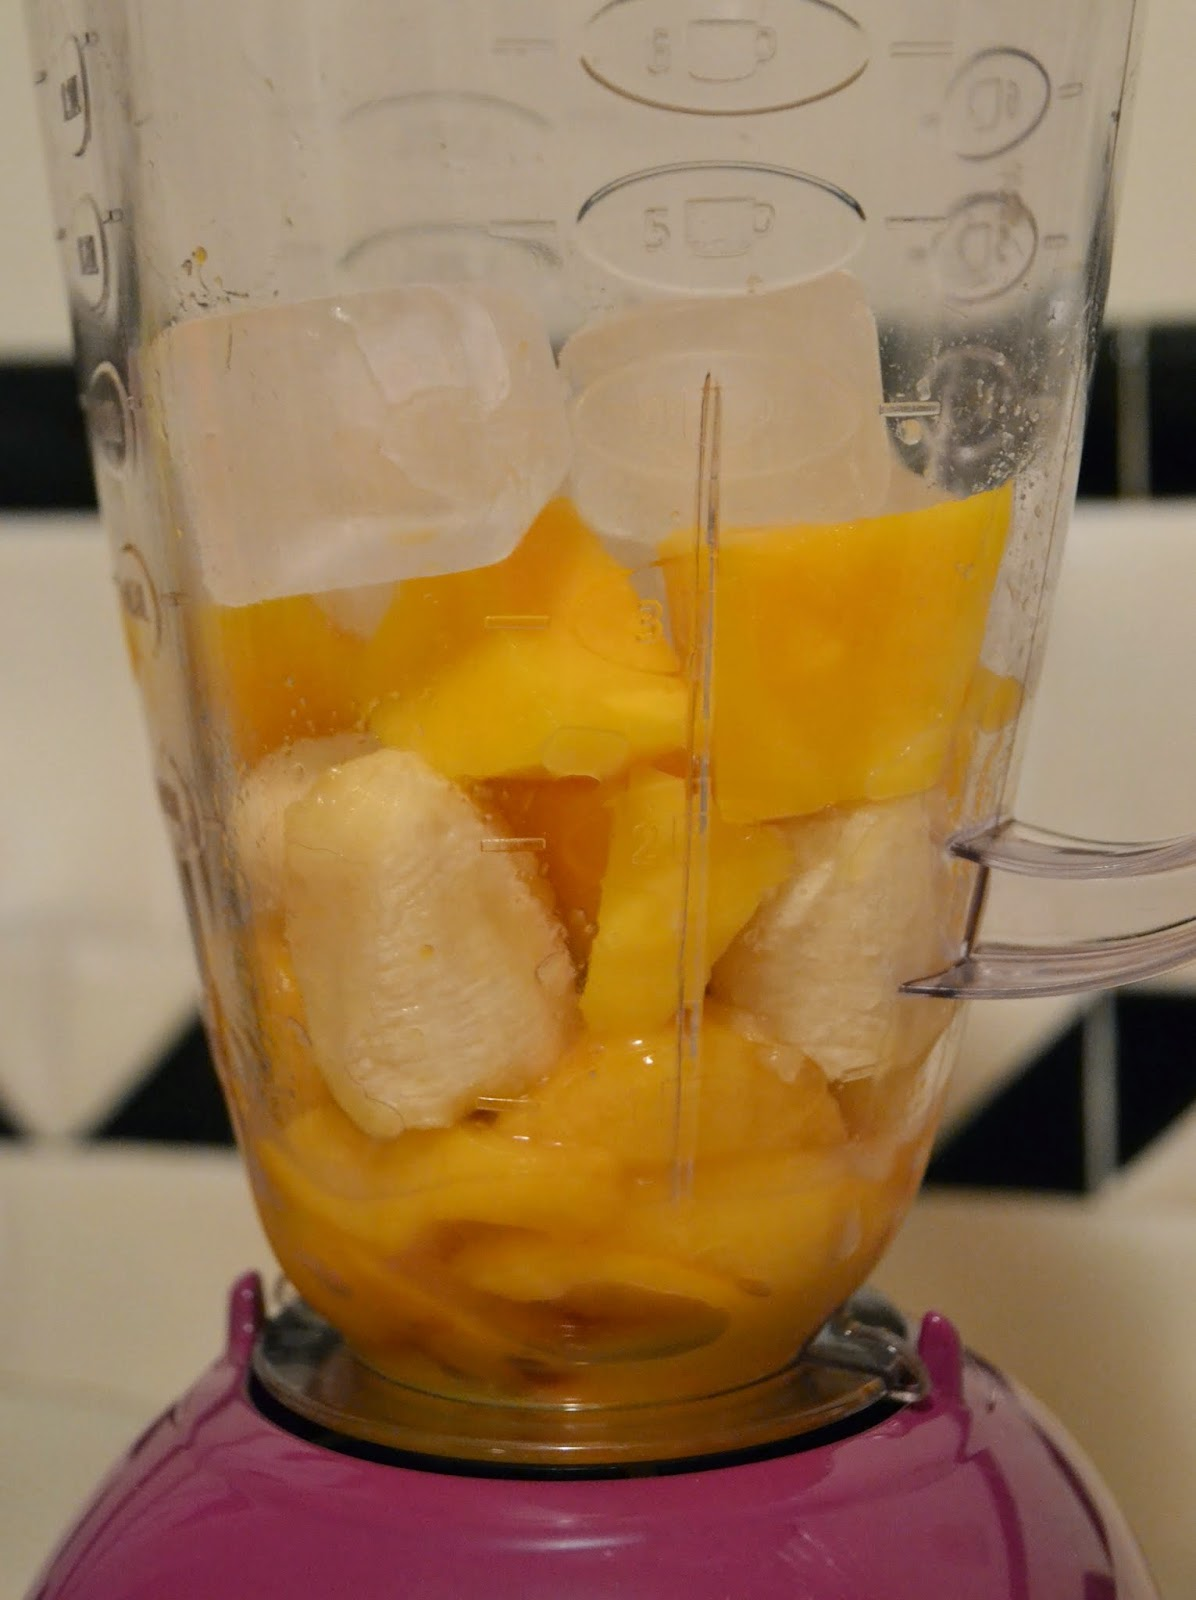 mango+peach+smoothie+ingredients.JPG